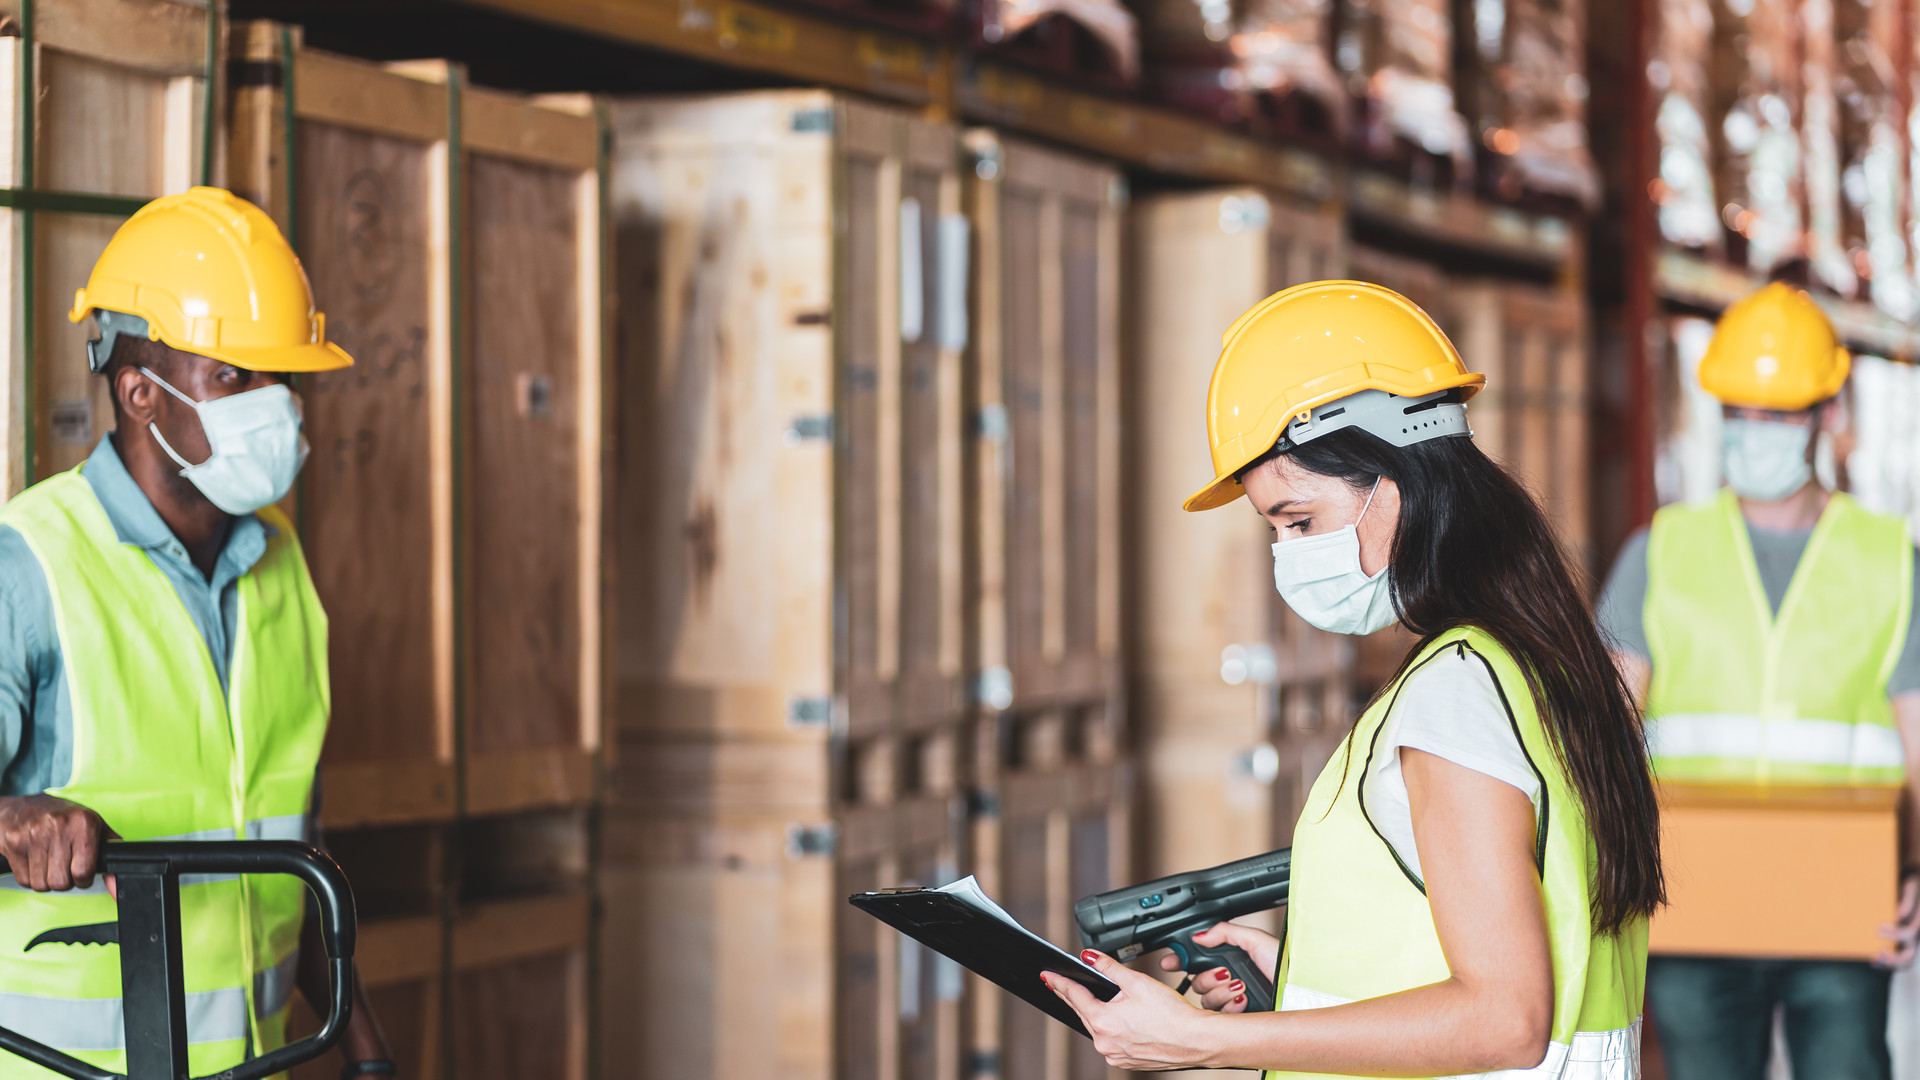 Diversity workers wear protective face mask in warehouse